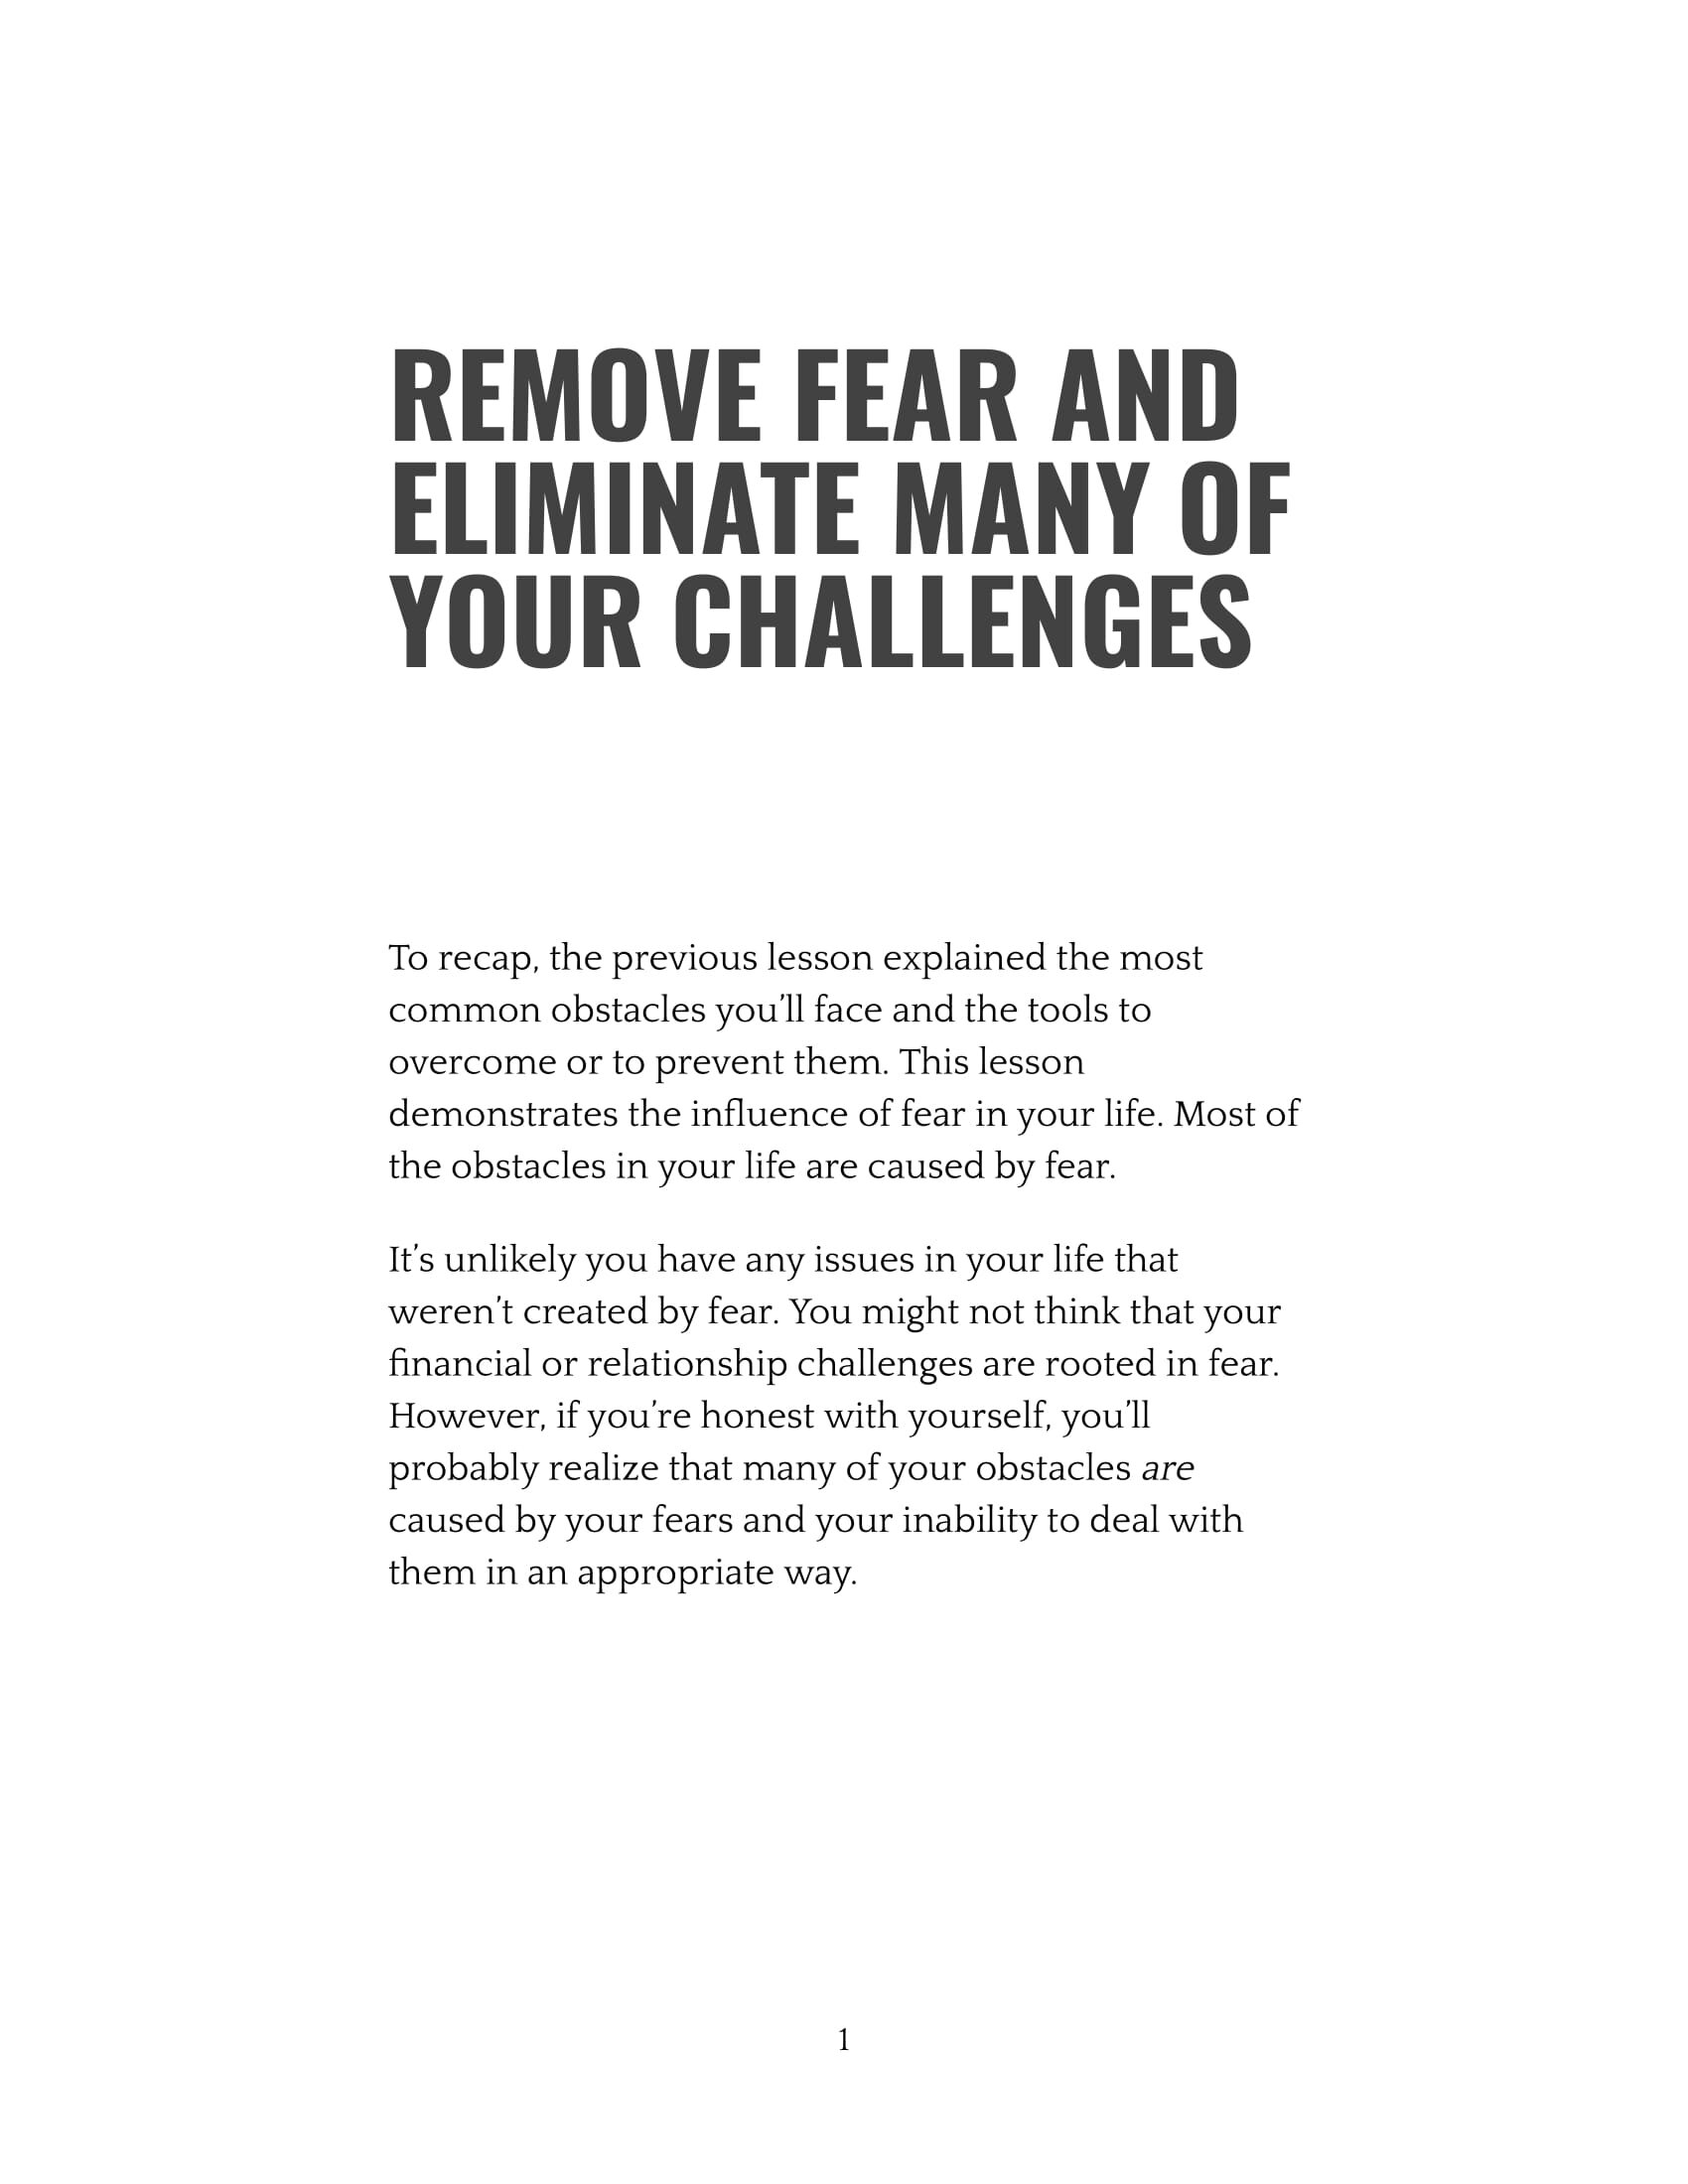 Remove Fear And Eliminate Many Of Your Challenges-1.jpg